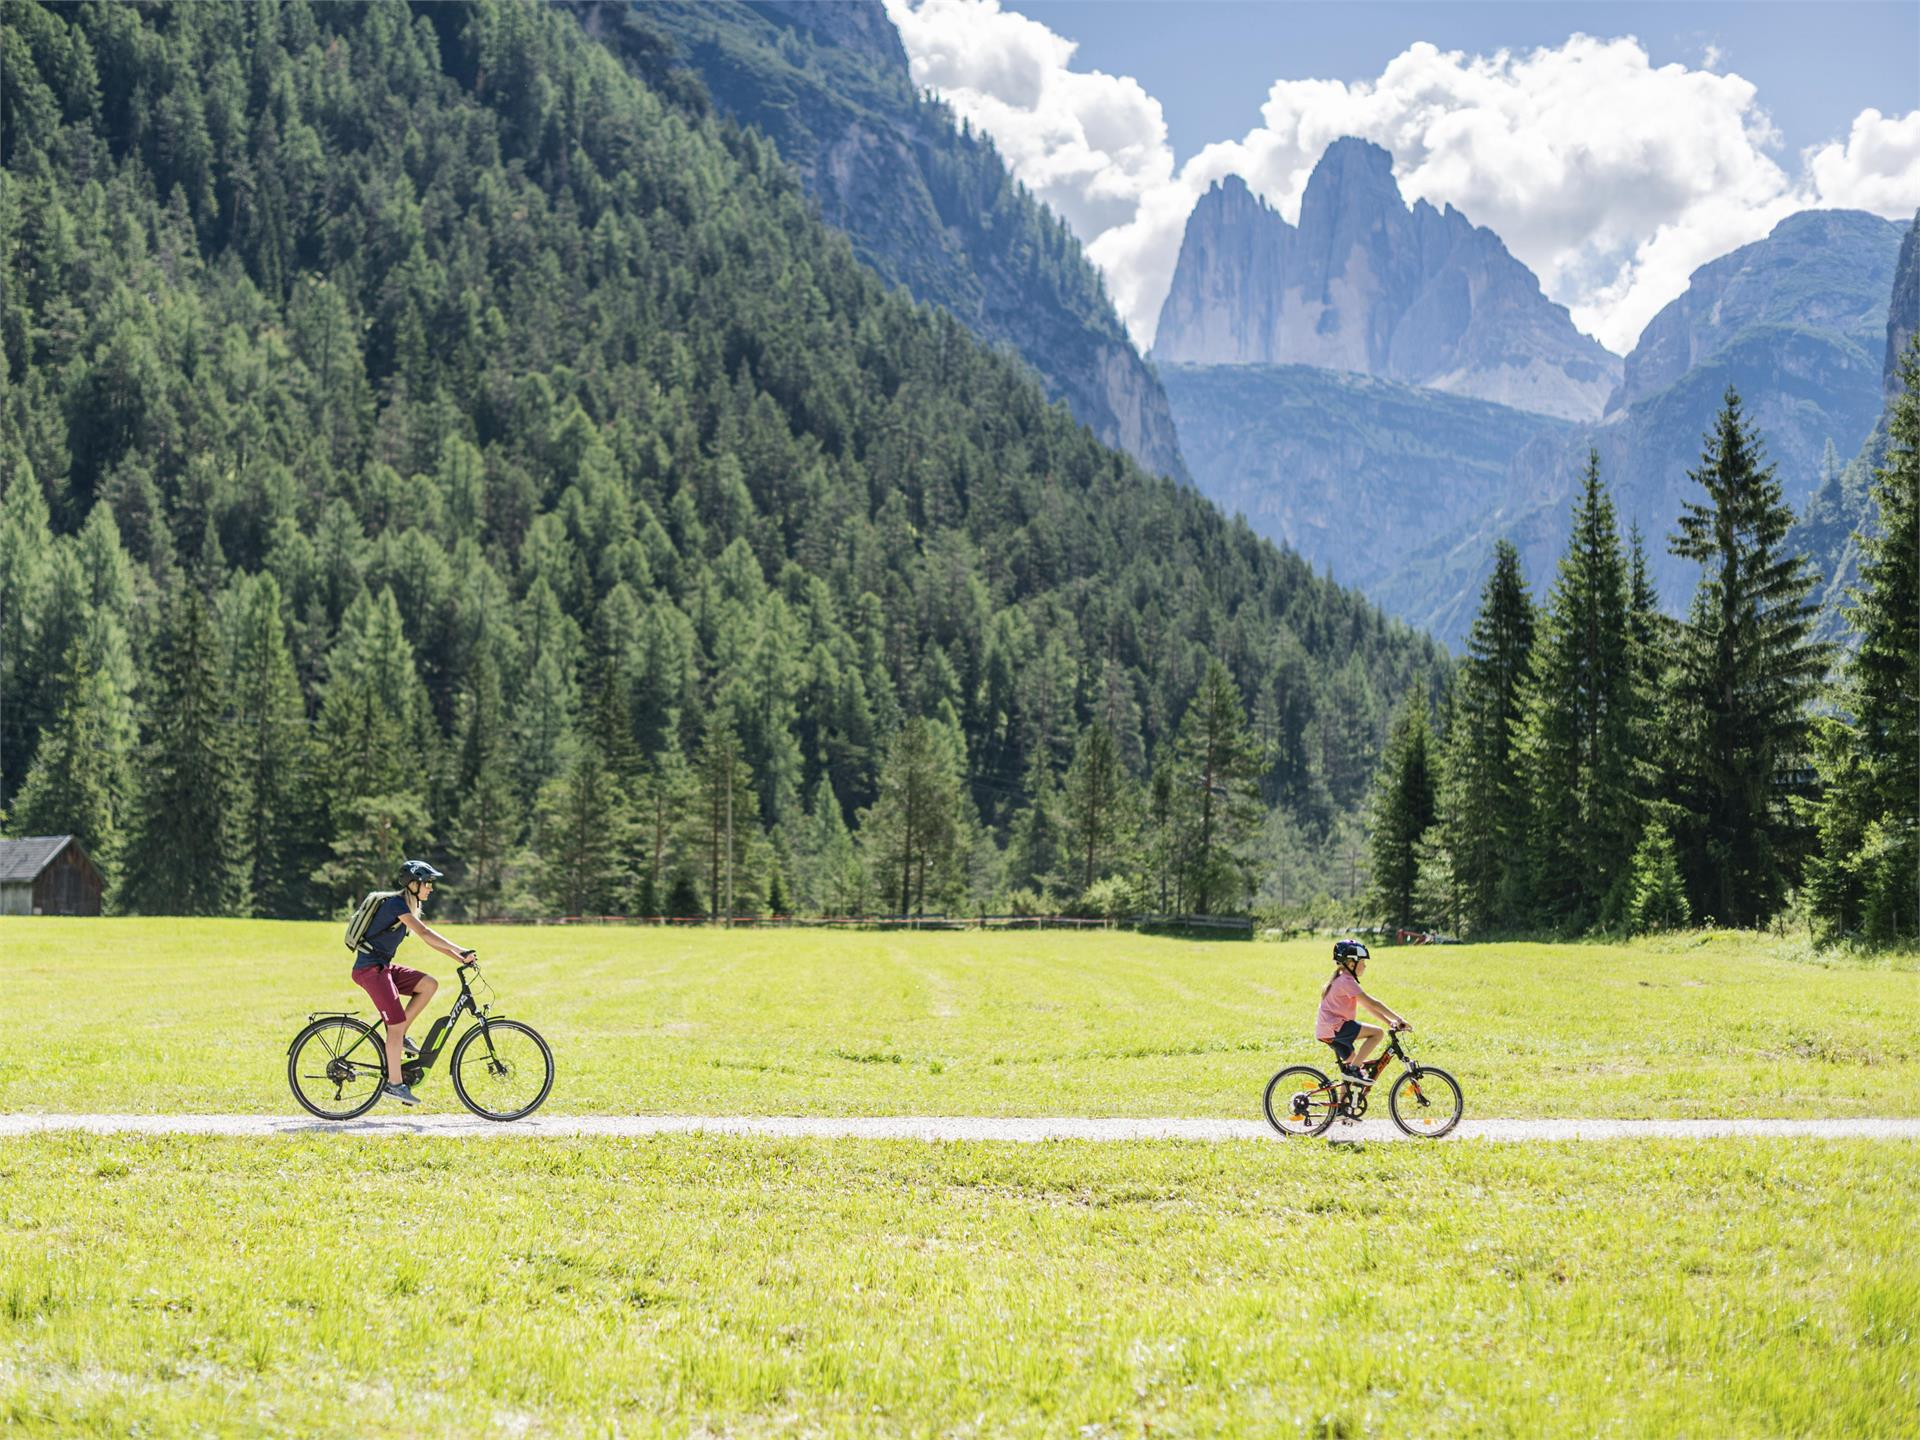 Dolomites cycle path: Route Dobbiaco/Toblach - Cortina